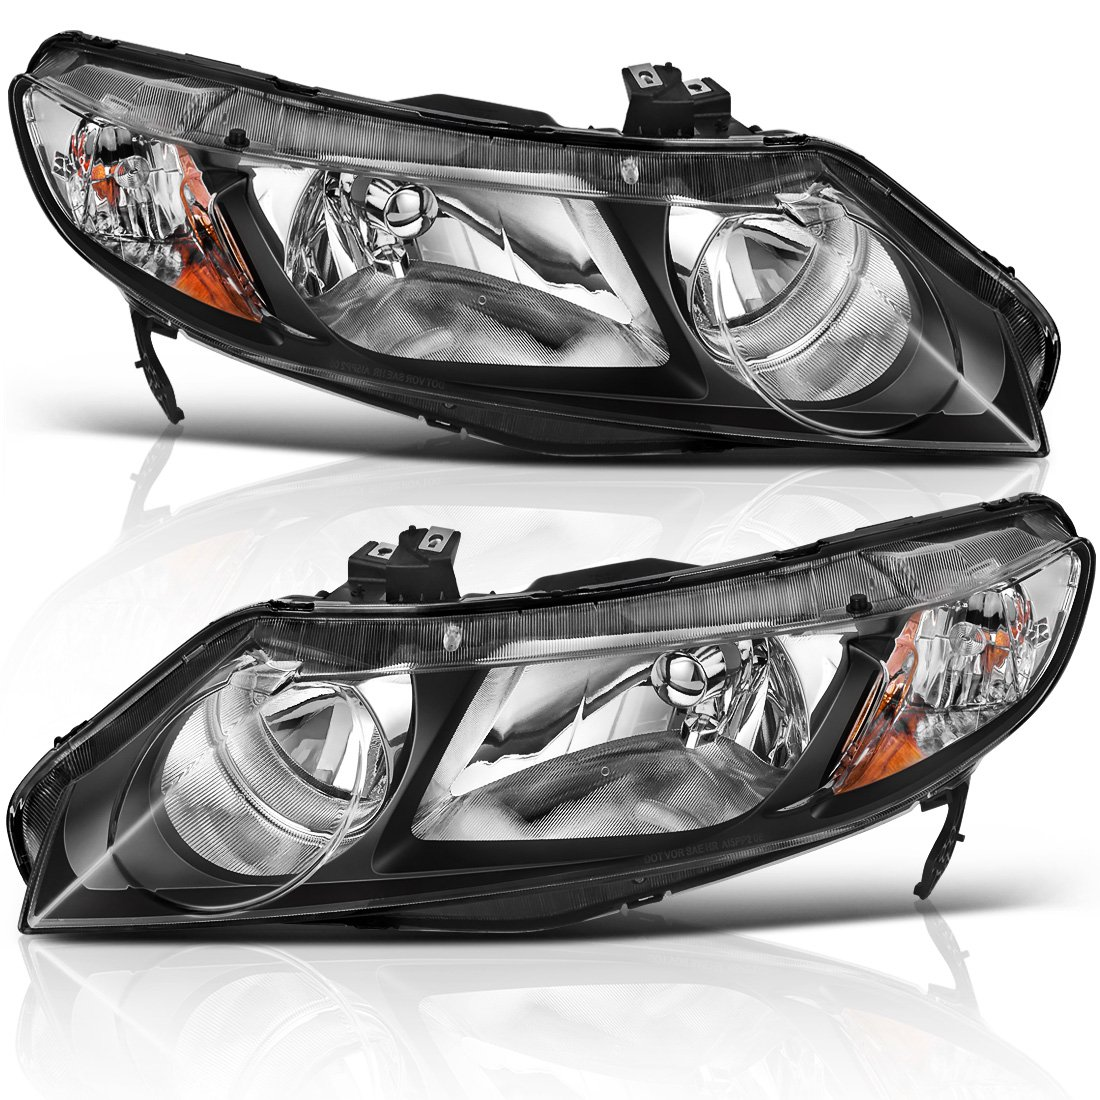 AUTOSAVER88 Headlight Assembly for 06 07 08 09 10 11 Honda Civic 4-Door Headlamp with Amber Park Lens,Black Housing Amber Reflector, One-Year Warranty (Passenger And Driver Side)